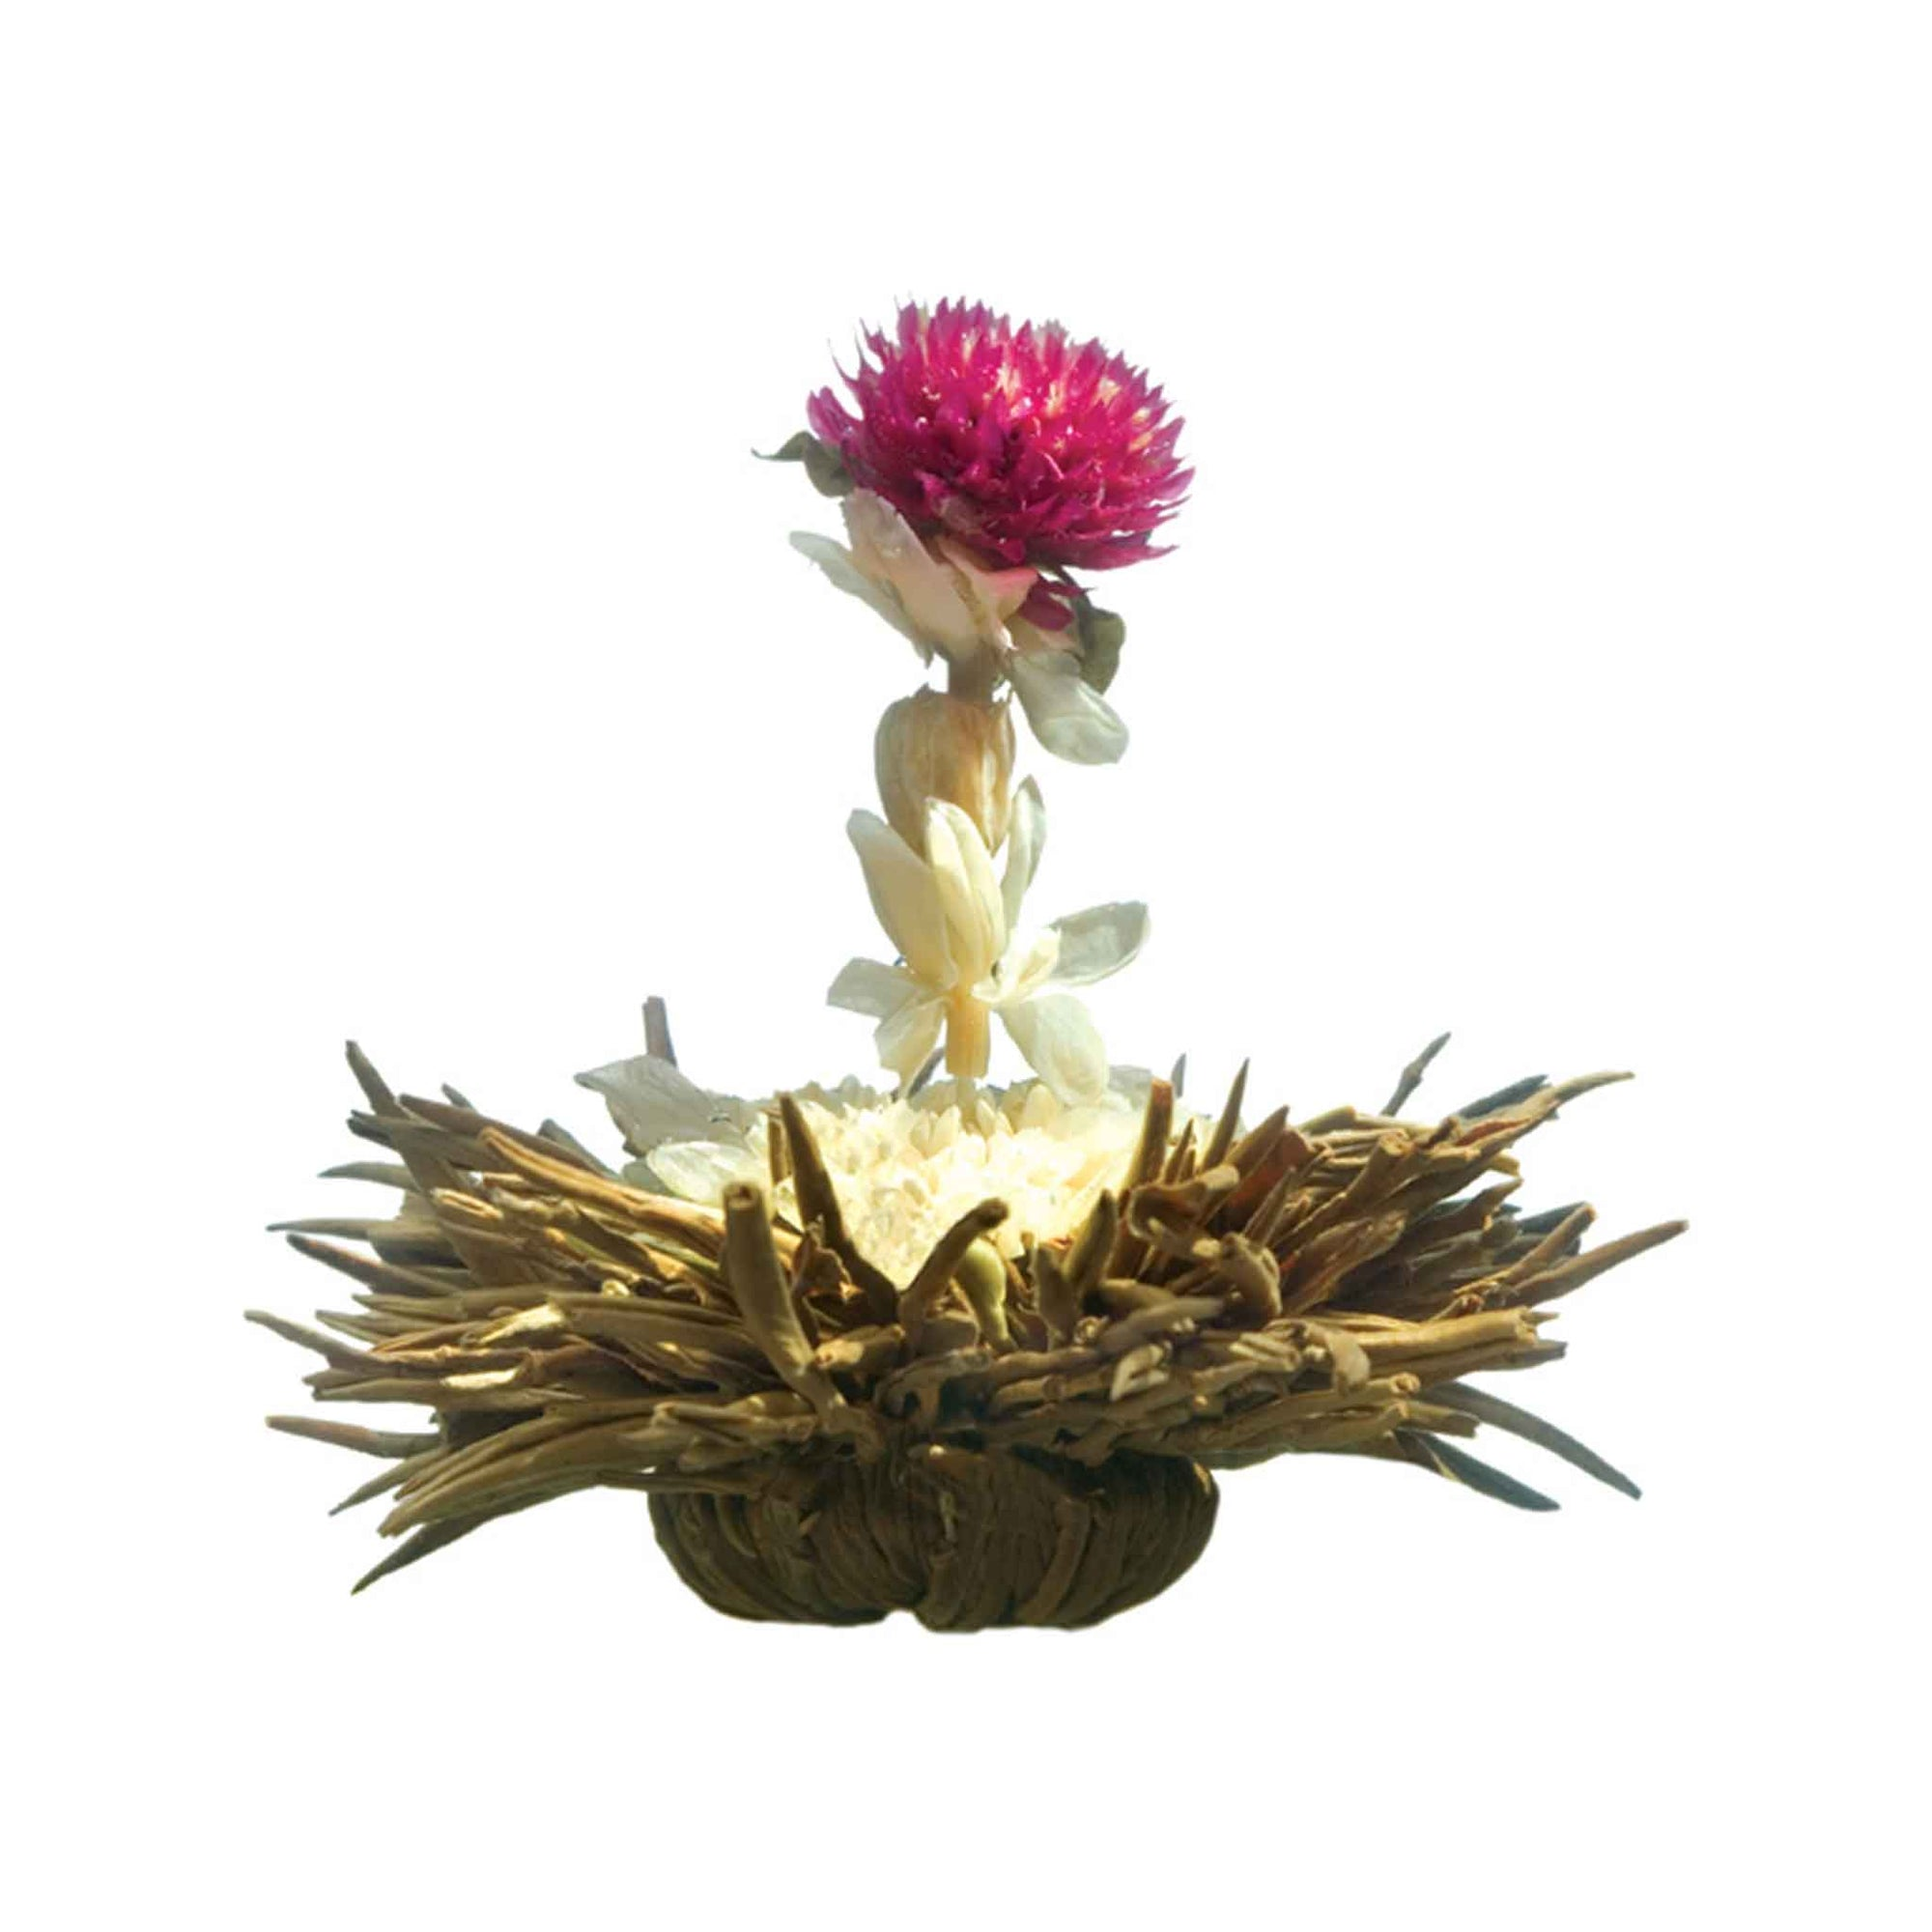 Teaposy crown-me blossom with silver needle white tea, chrysanthemum, jasmine and amaranth